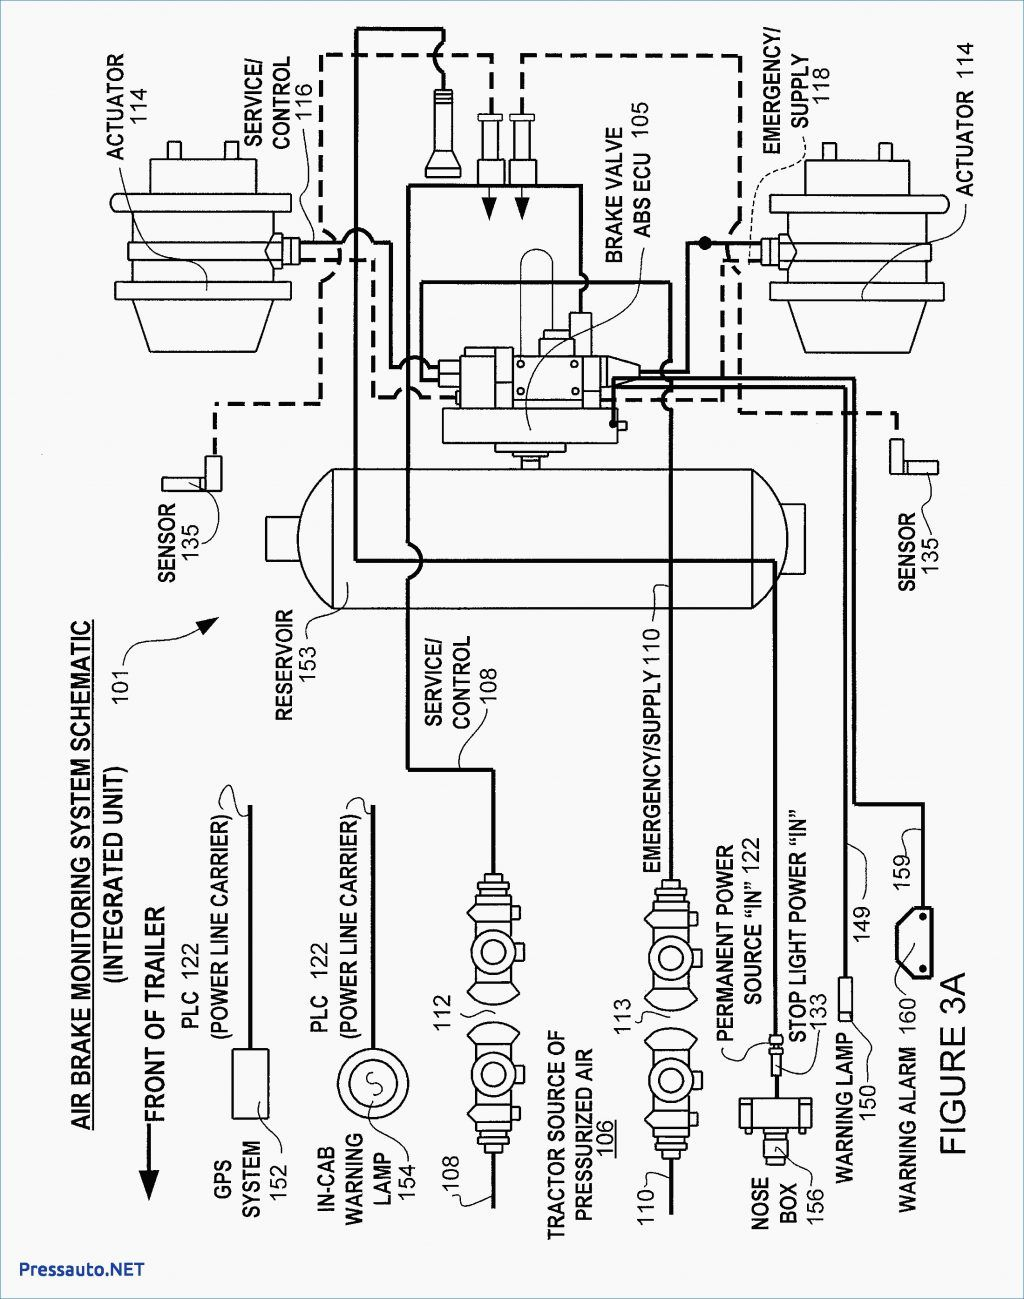 b3a846f6d02b6da5ca011e84a89797cf X Trailer Wiring Diagram on basic 4 wire, chevy 7 pin, flat 4 wire, electric brakes,